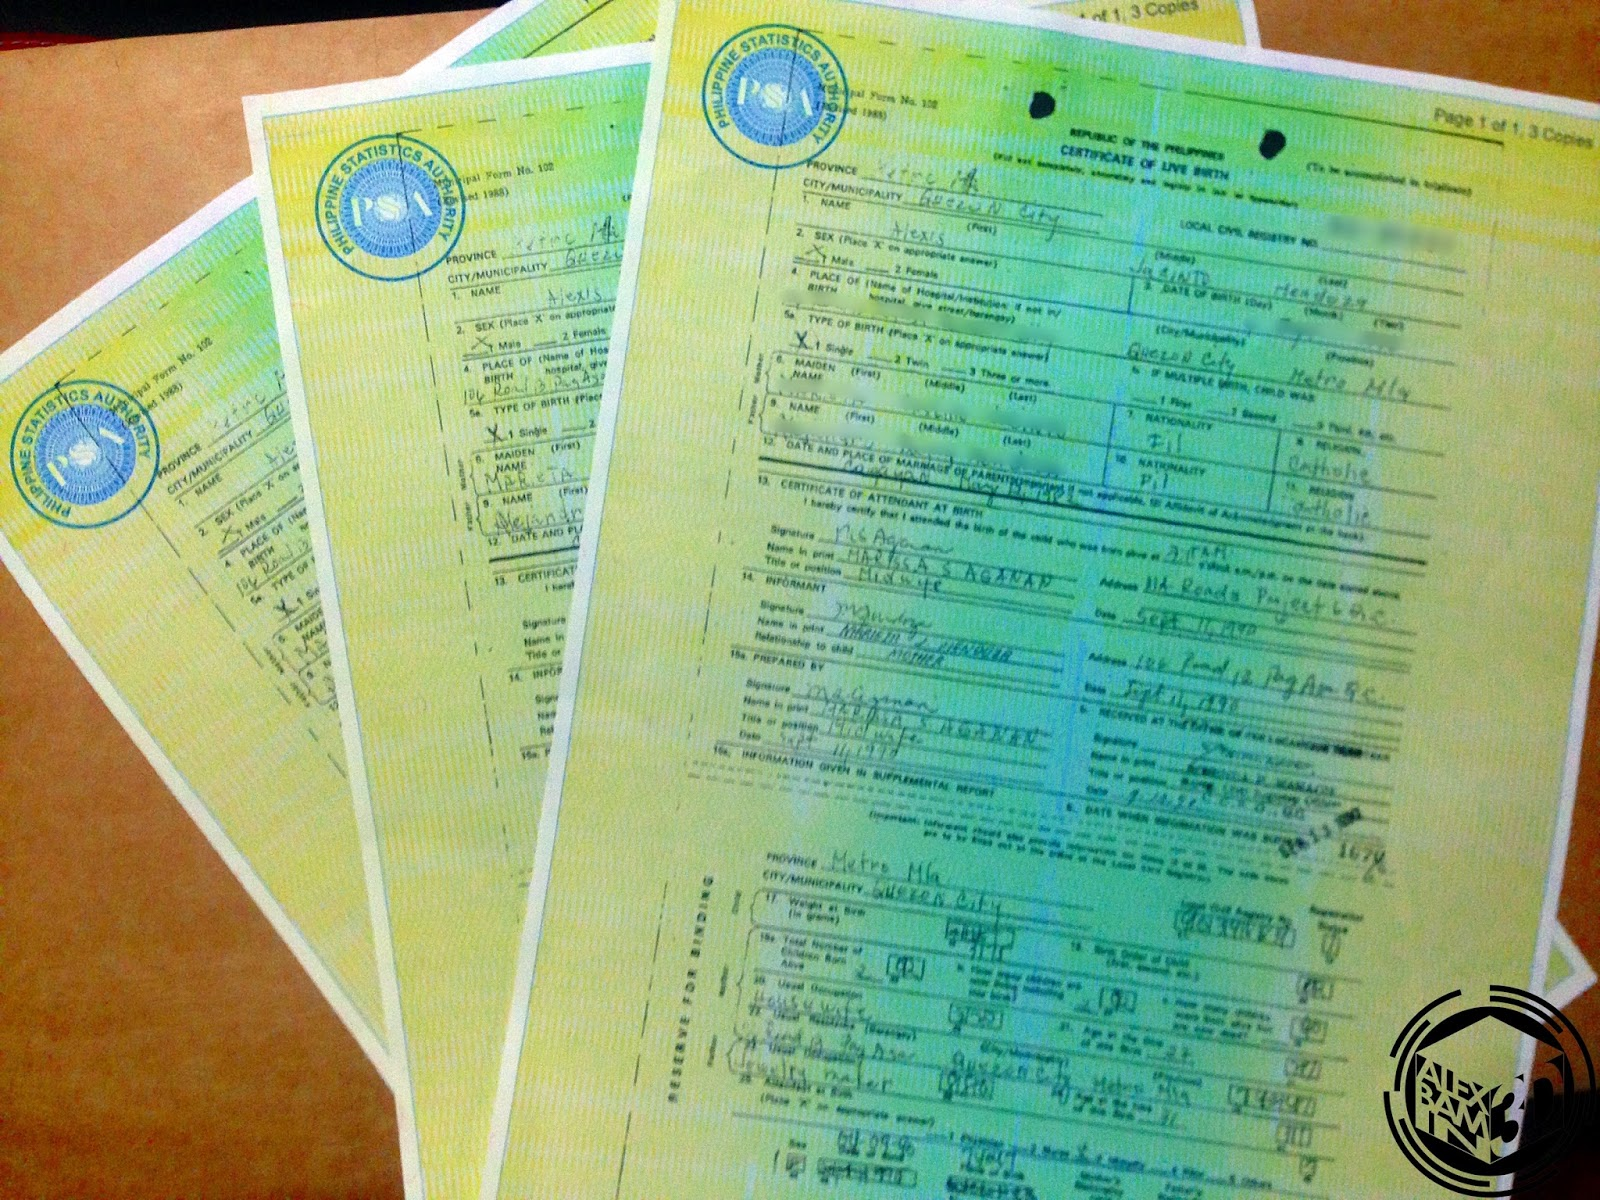 Getting your nso birth certificate at sm business center alexbamin3d upon claiming you need to present the receipt and claim stub given to you when you filed your request youll also need to present 1 valid id aiddatafo Choice Image